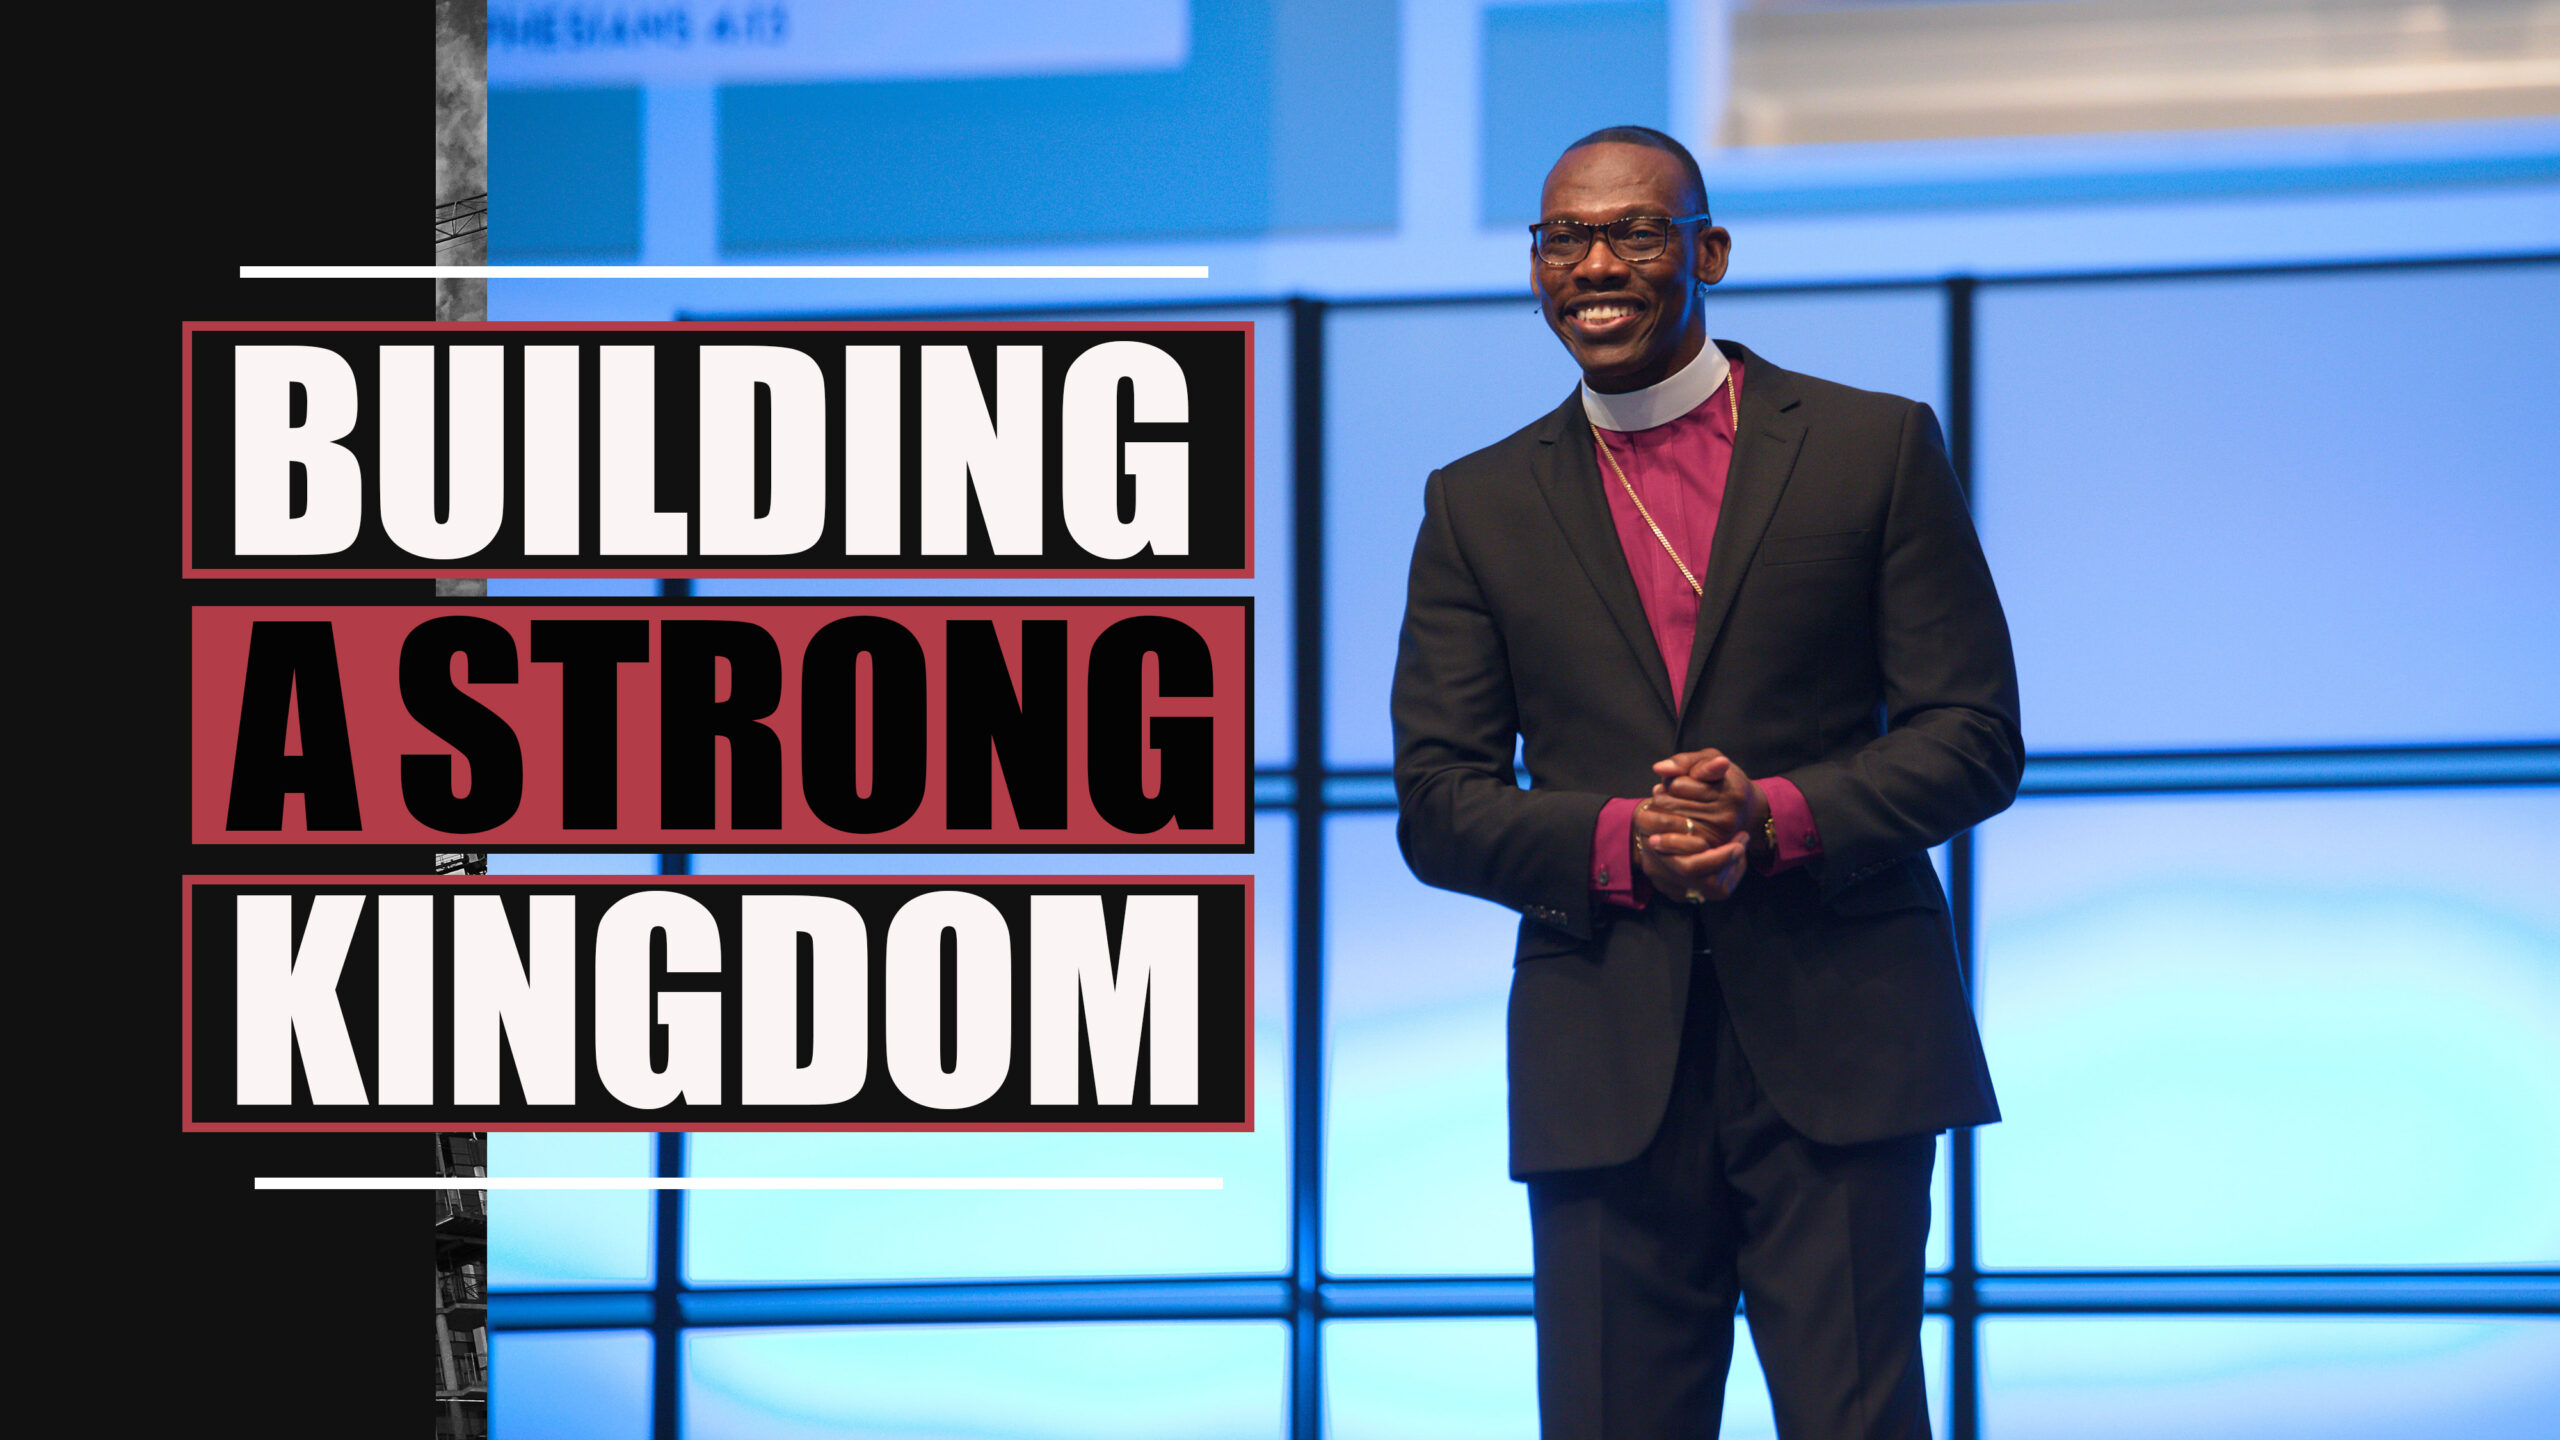 Building A Strong Kingdom